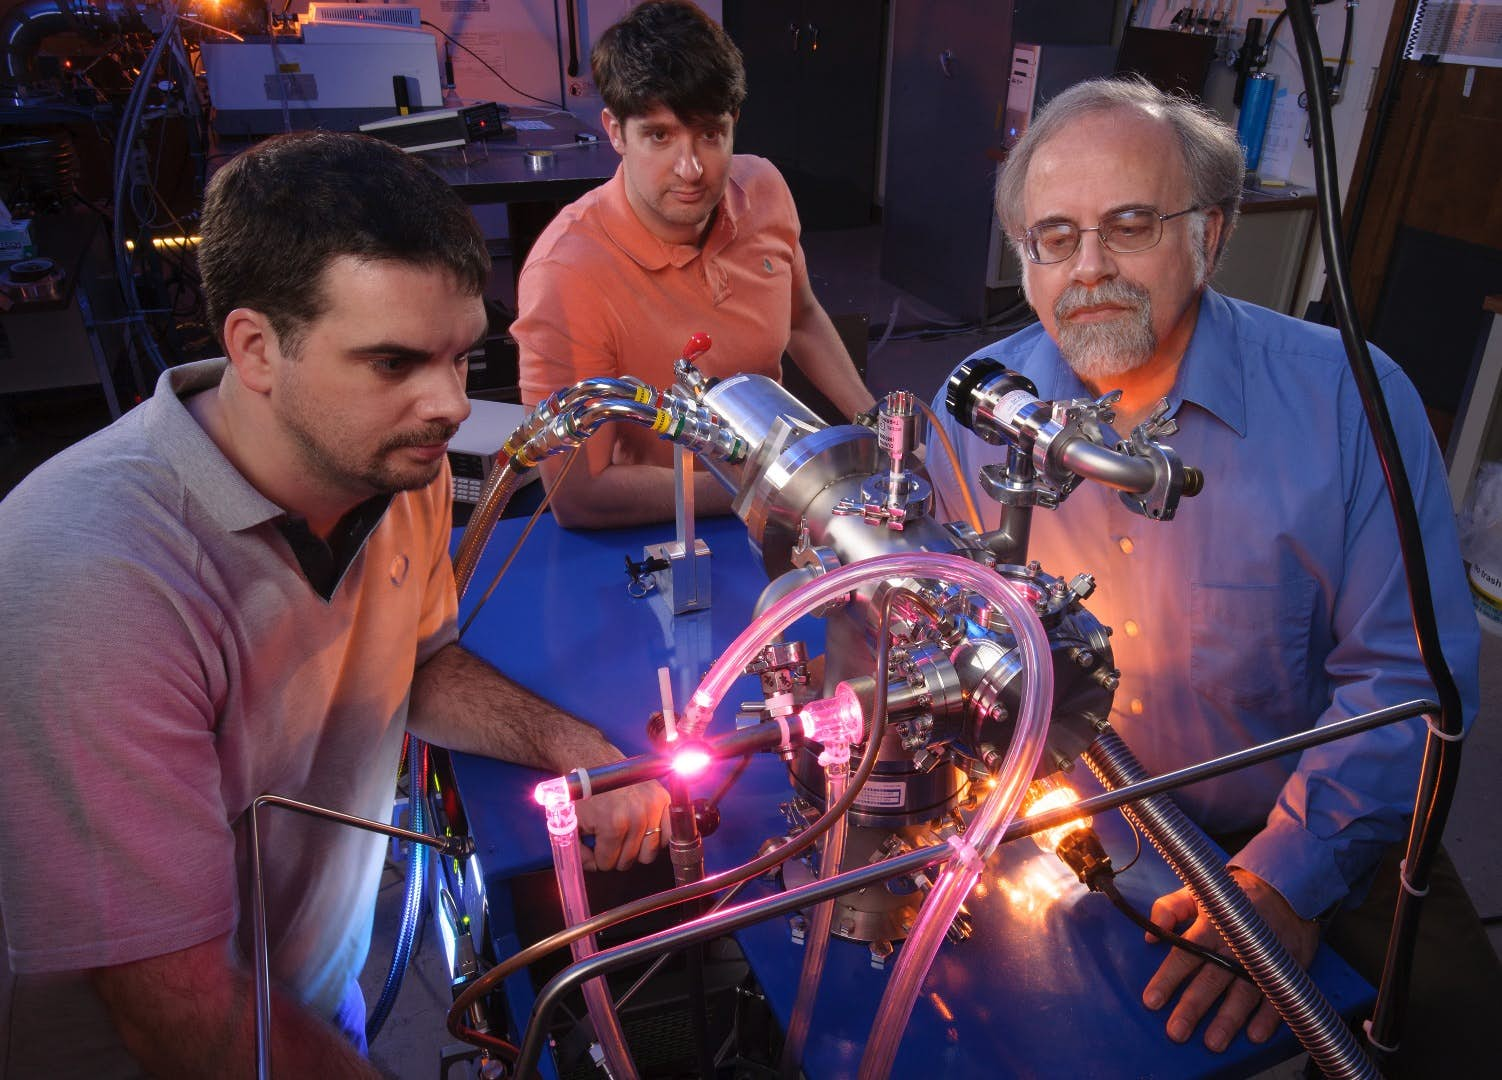 NASA Ames Research Center scientists Michel Nuevo, Christopher Materese and Scott Sandford